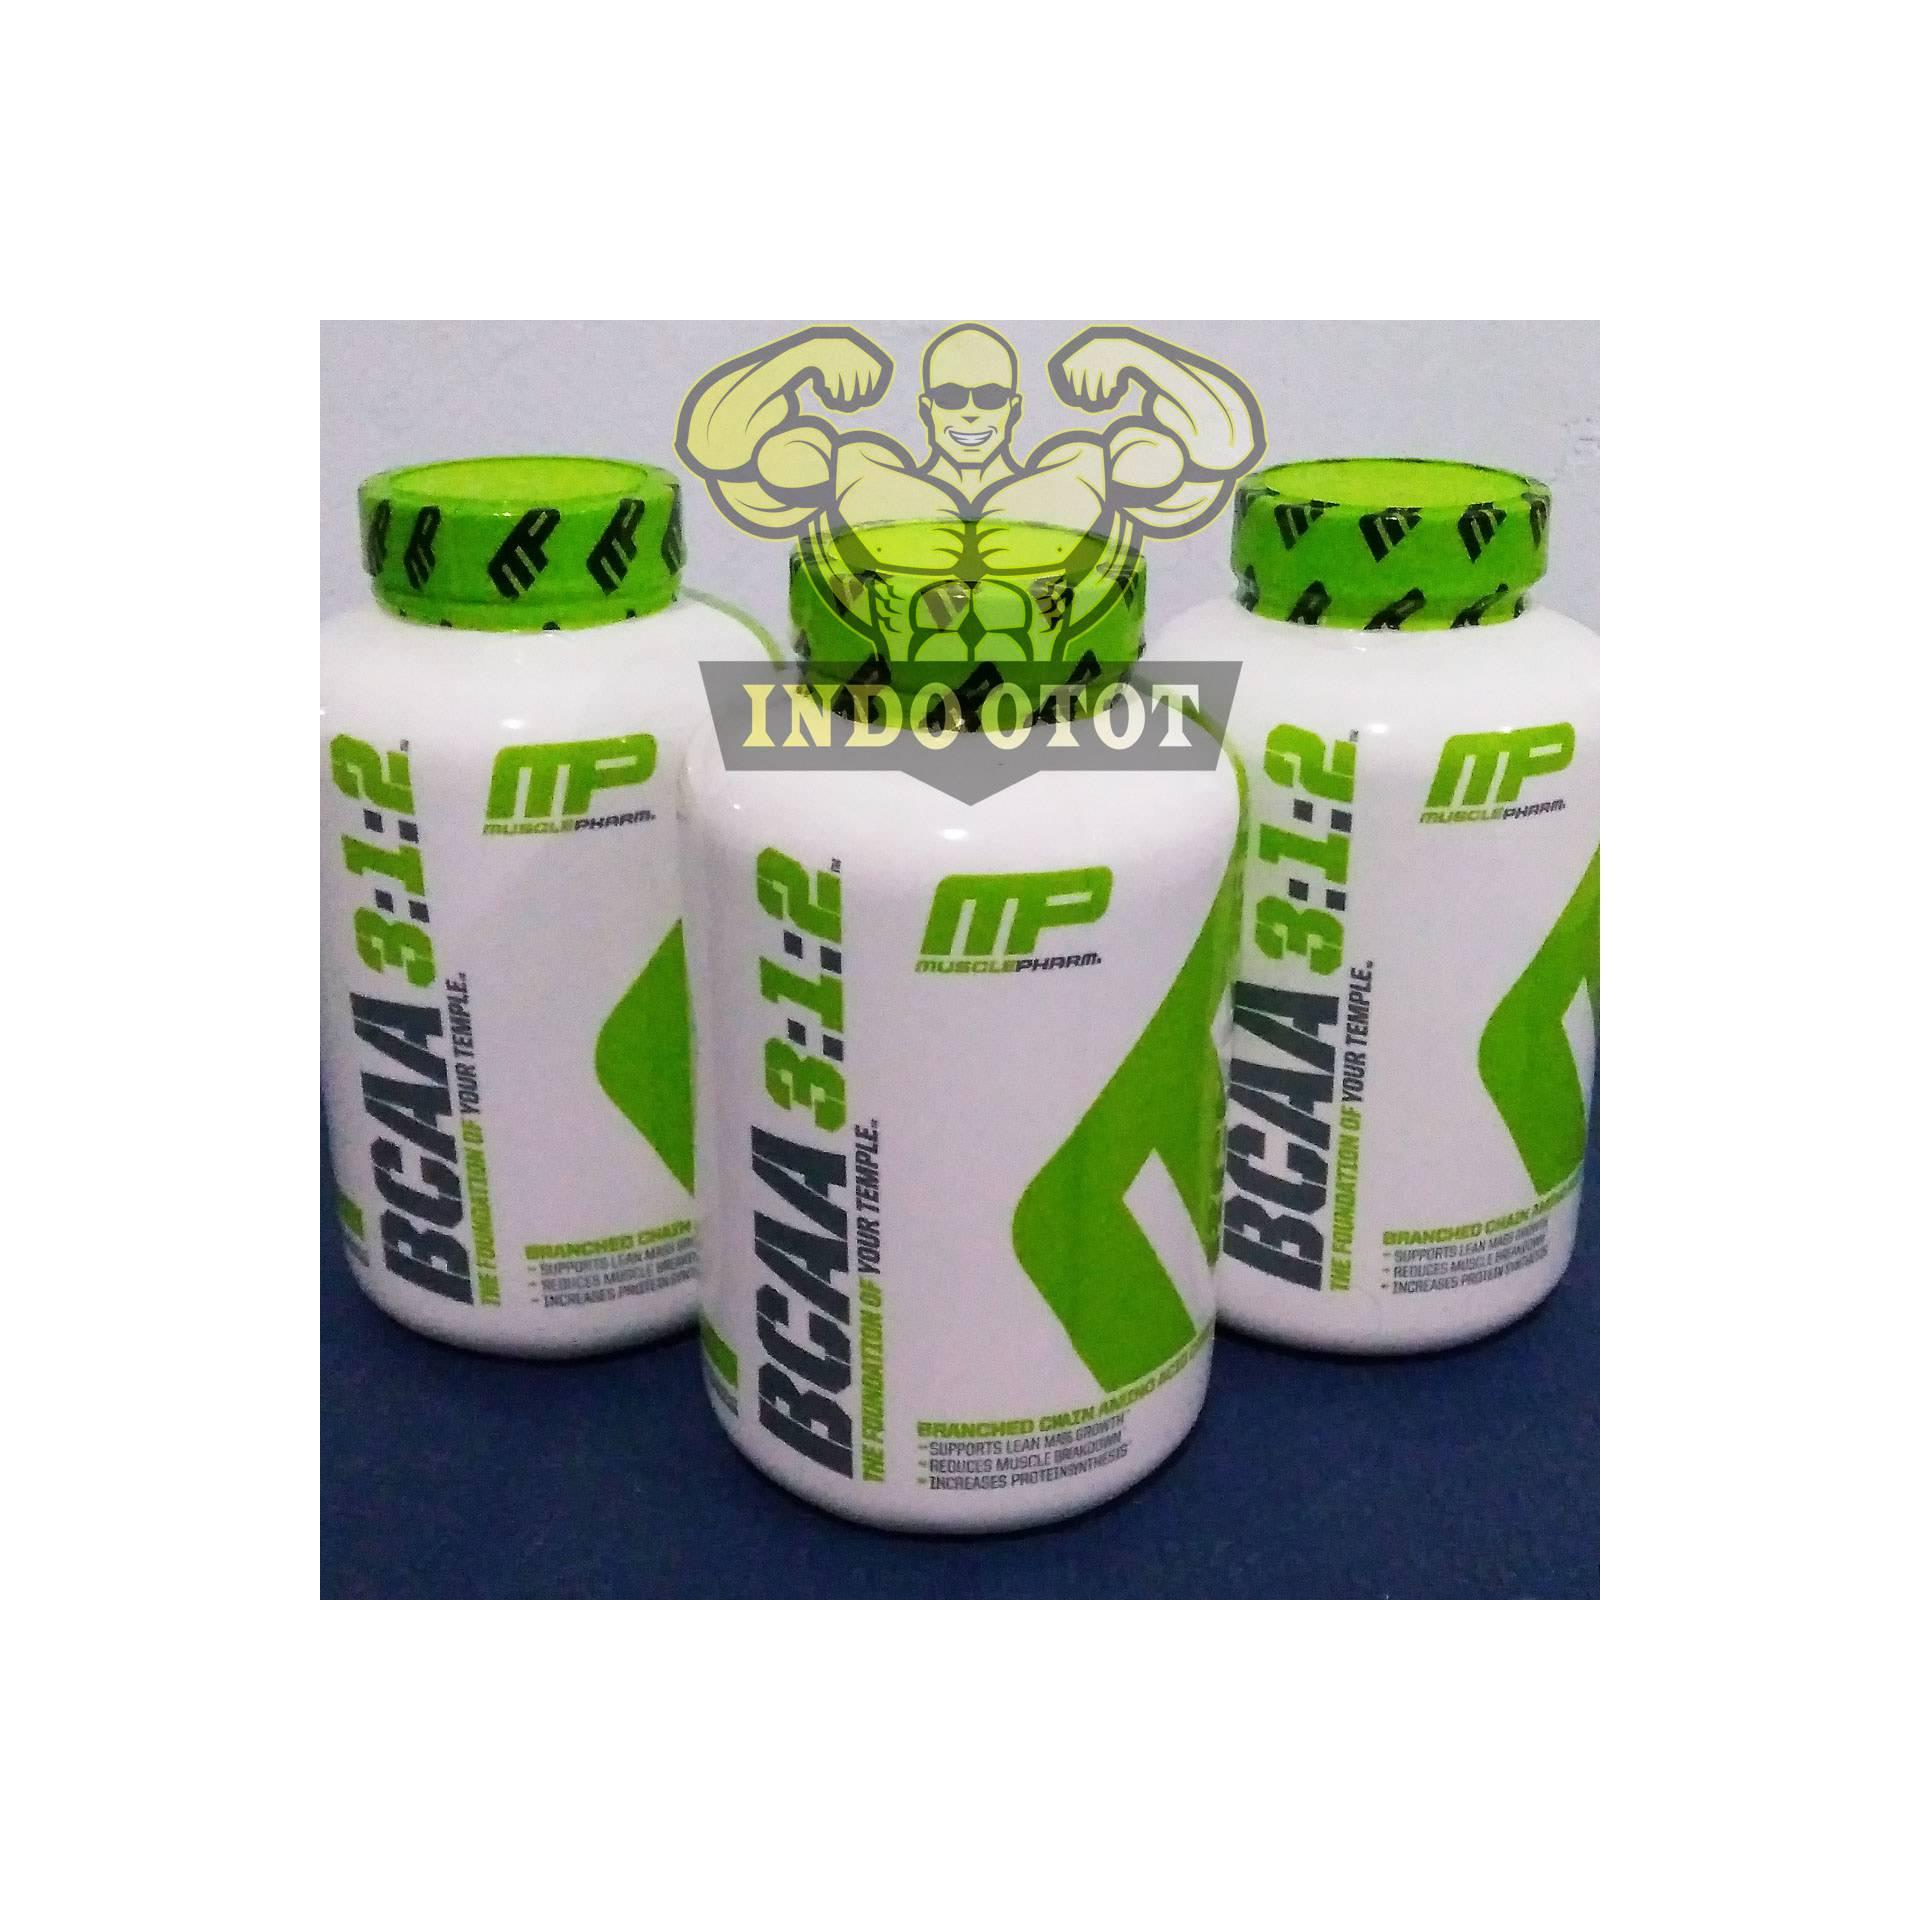 Musclepharm Mp Bcaa Eceran 50 Caps Review Harga Terkini Dan Ast 4500 Ecer Per Butir Butiran Perbutir Satuan 462 Capsule Capsules Kapsul Amino Acid Acids Muscle Pharm Source 3 1 2 240 6000mg 240caps